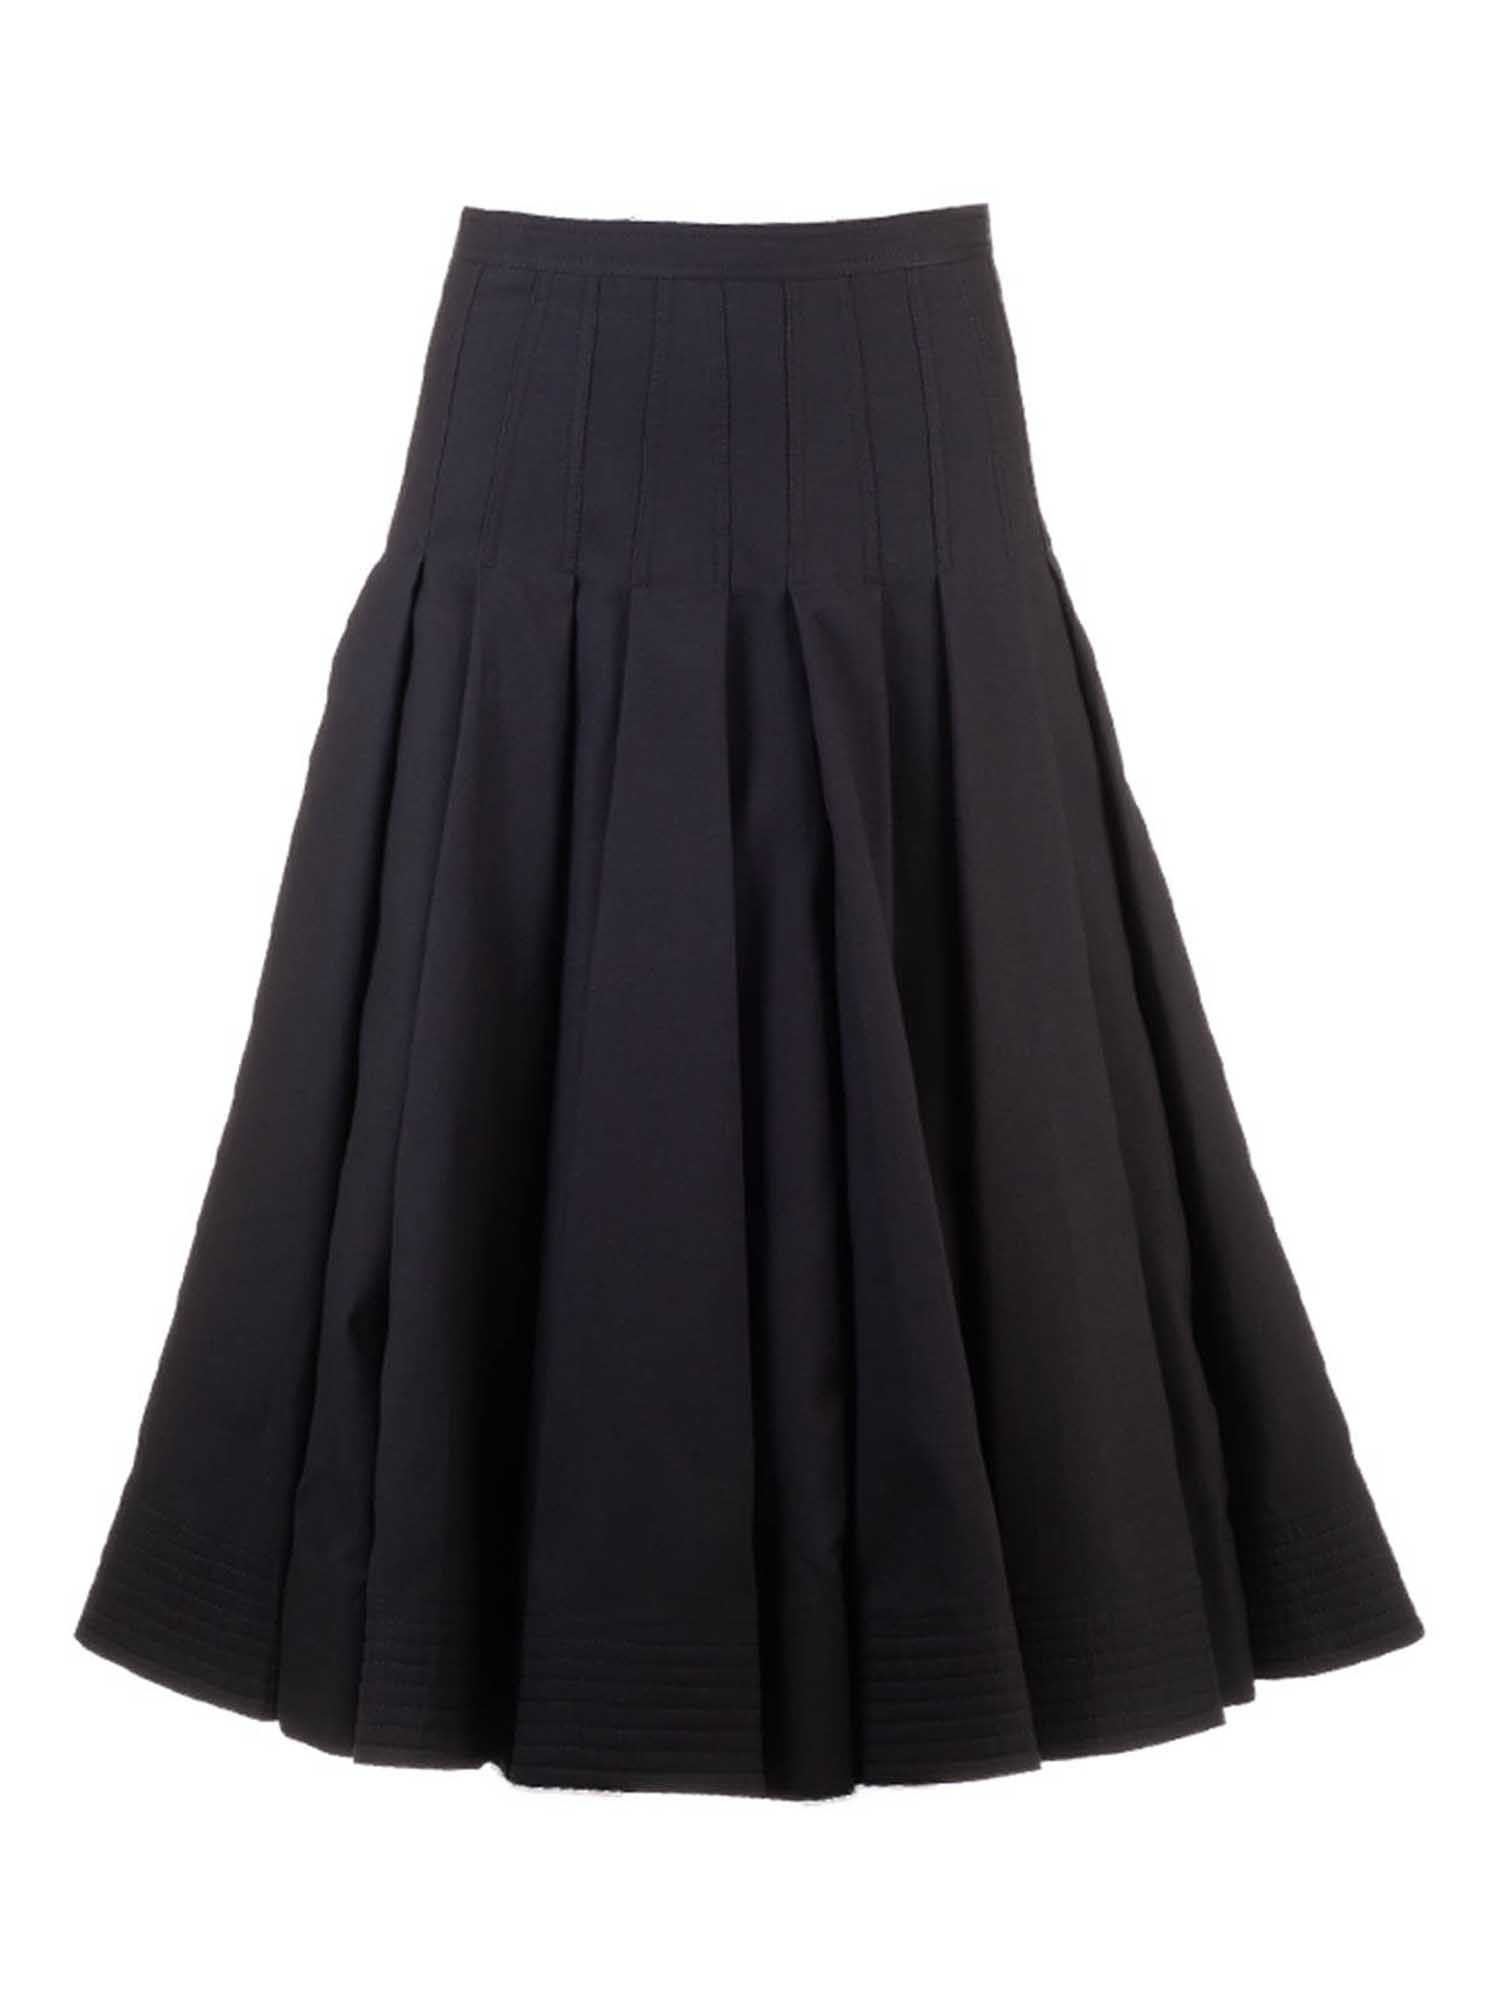 Valentino PLEATED SKIRT IN BLACK